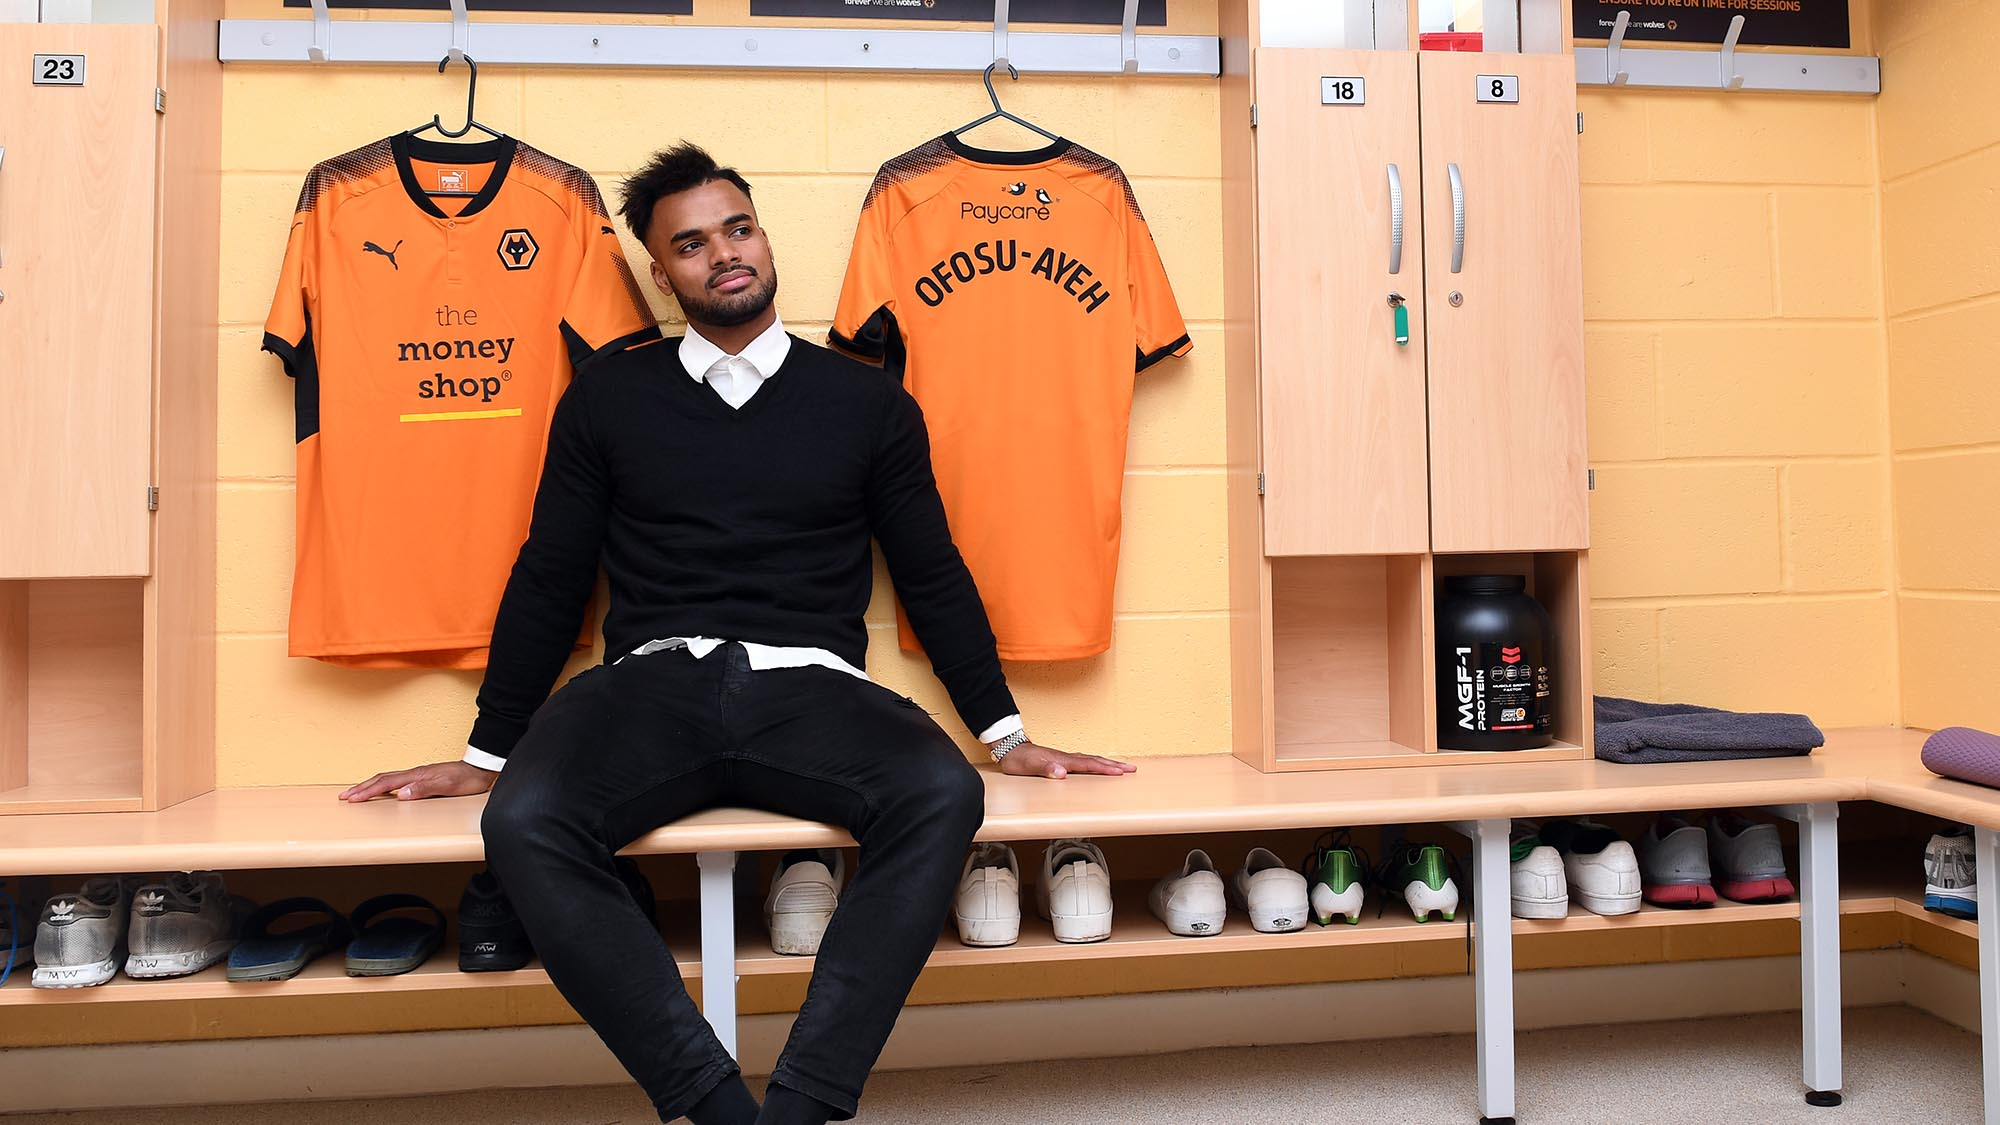 Wolves boss says crocked Ghana defender Phil Ofosu-Ayeh making progress